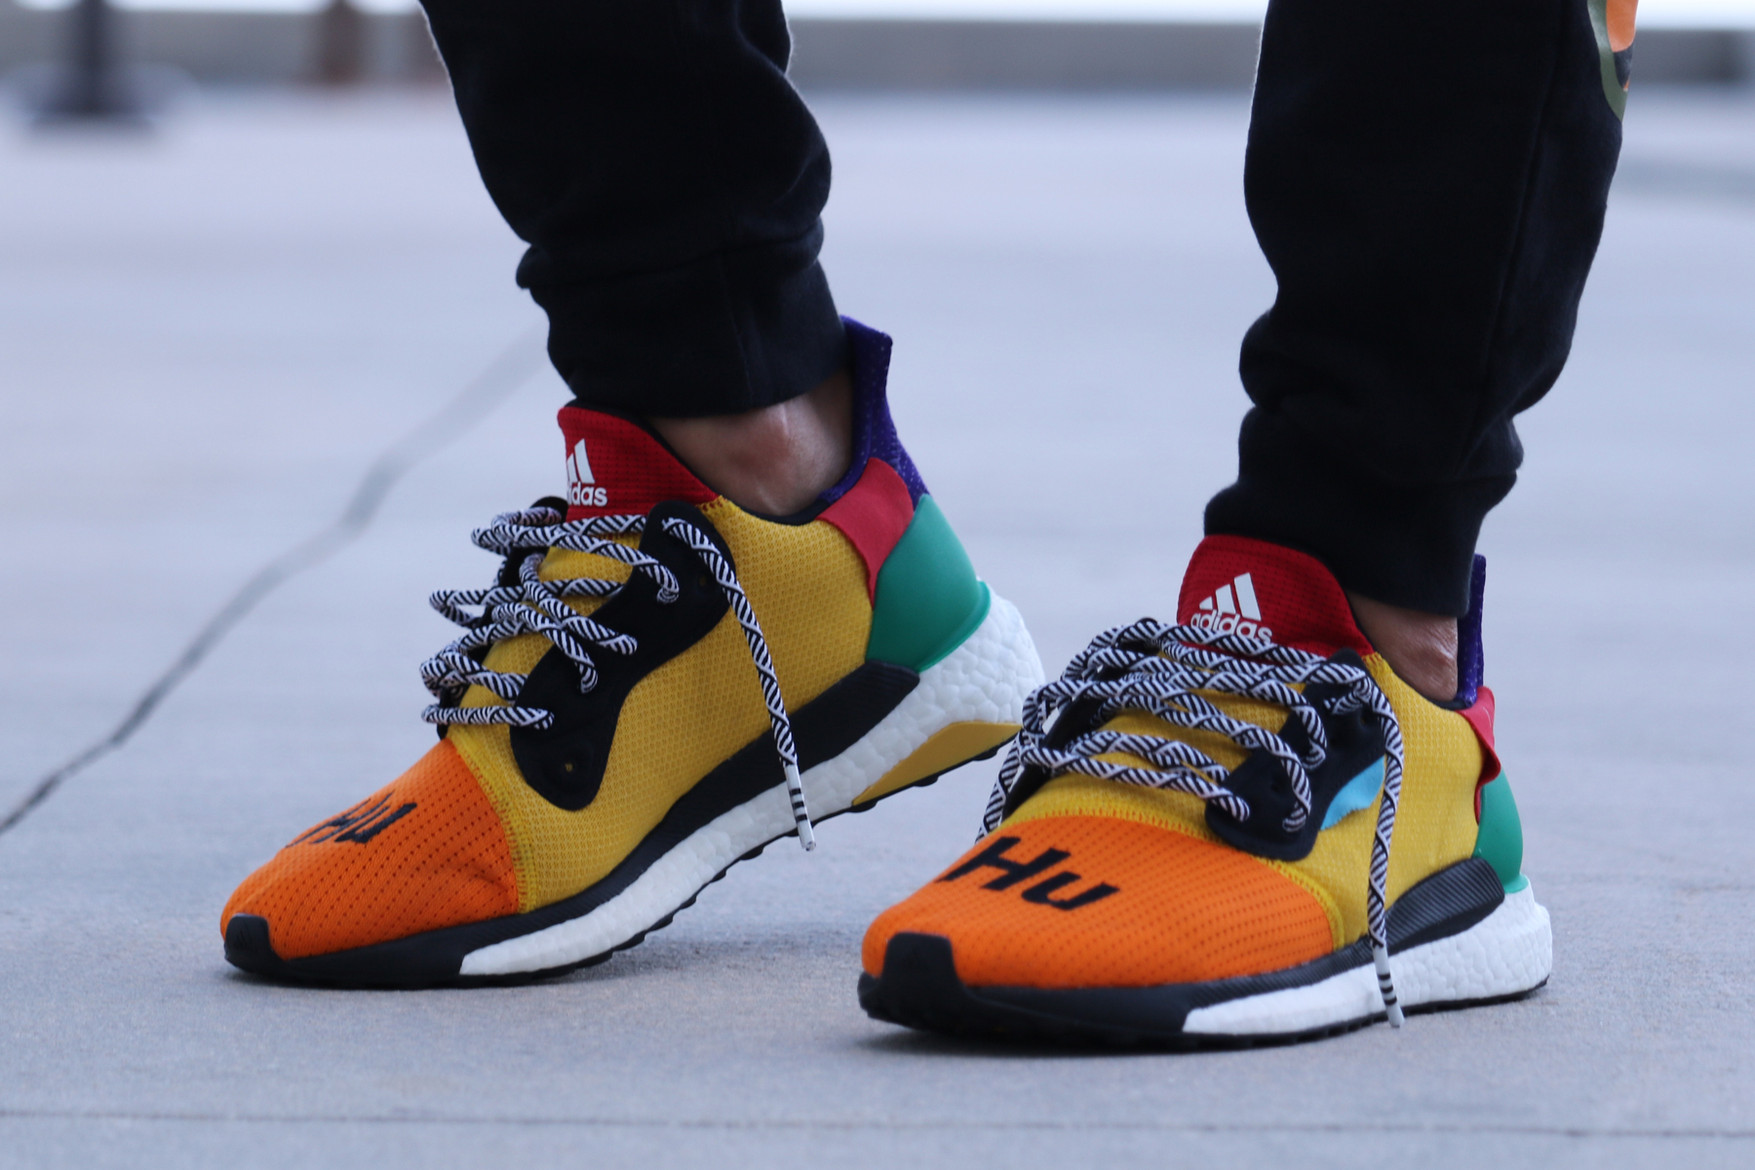 cf350a3bf The PHARRELL x ADIDAS SOLAR HU GLIDE ST is yet to receive an official  release date